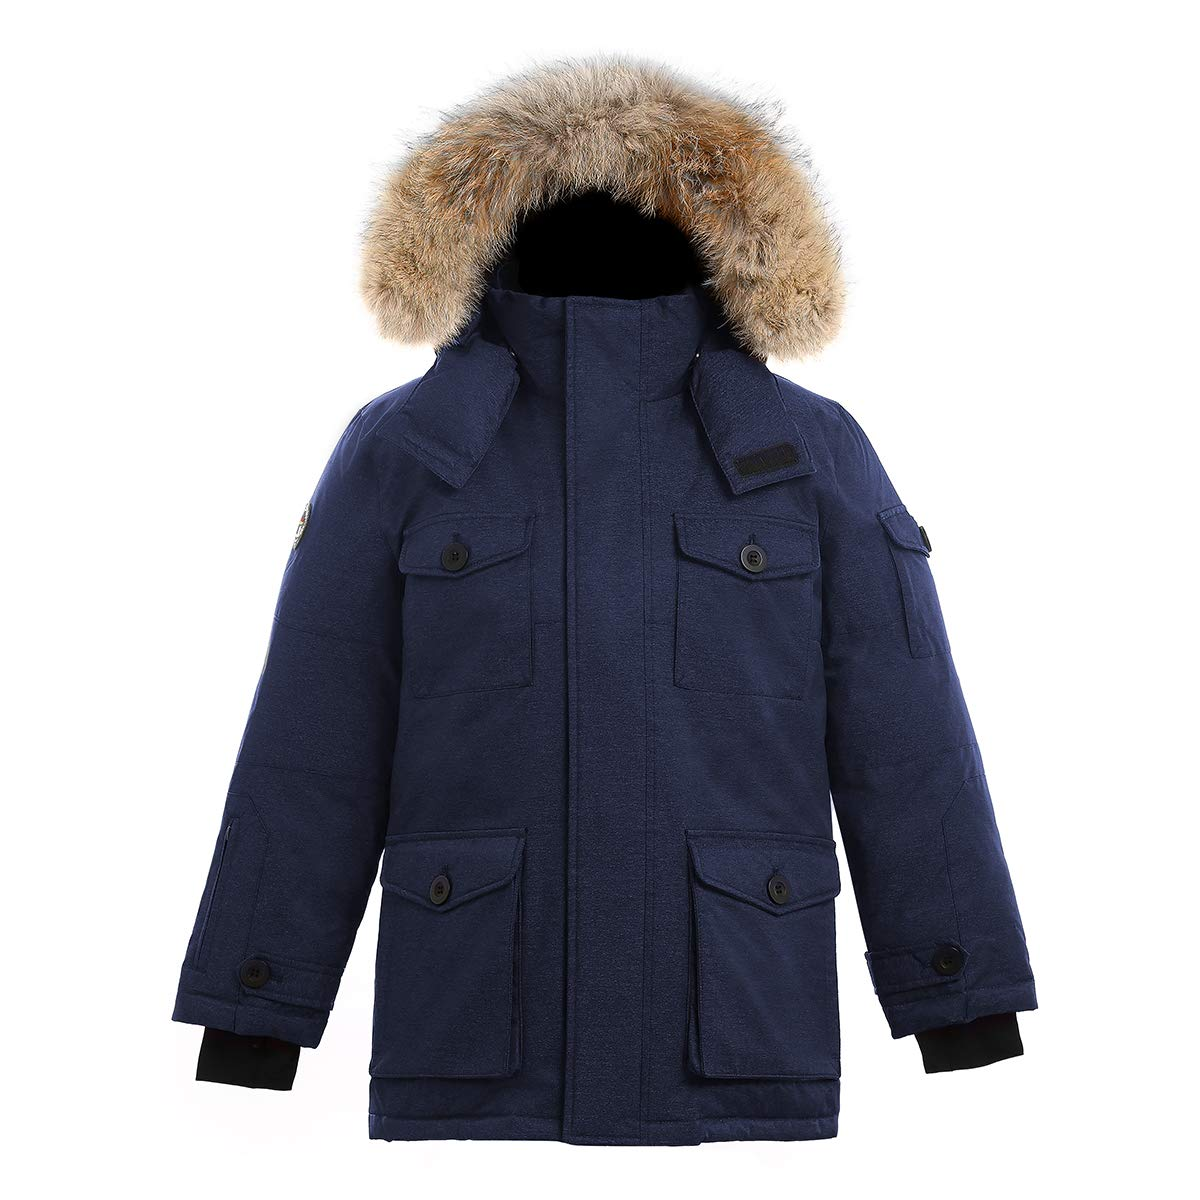 Triple F.A.T. Goose SAGA Collection | Eldridge Boys Parka Jacket (12/14, Navy)